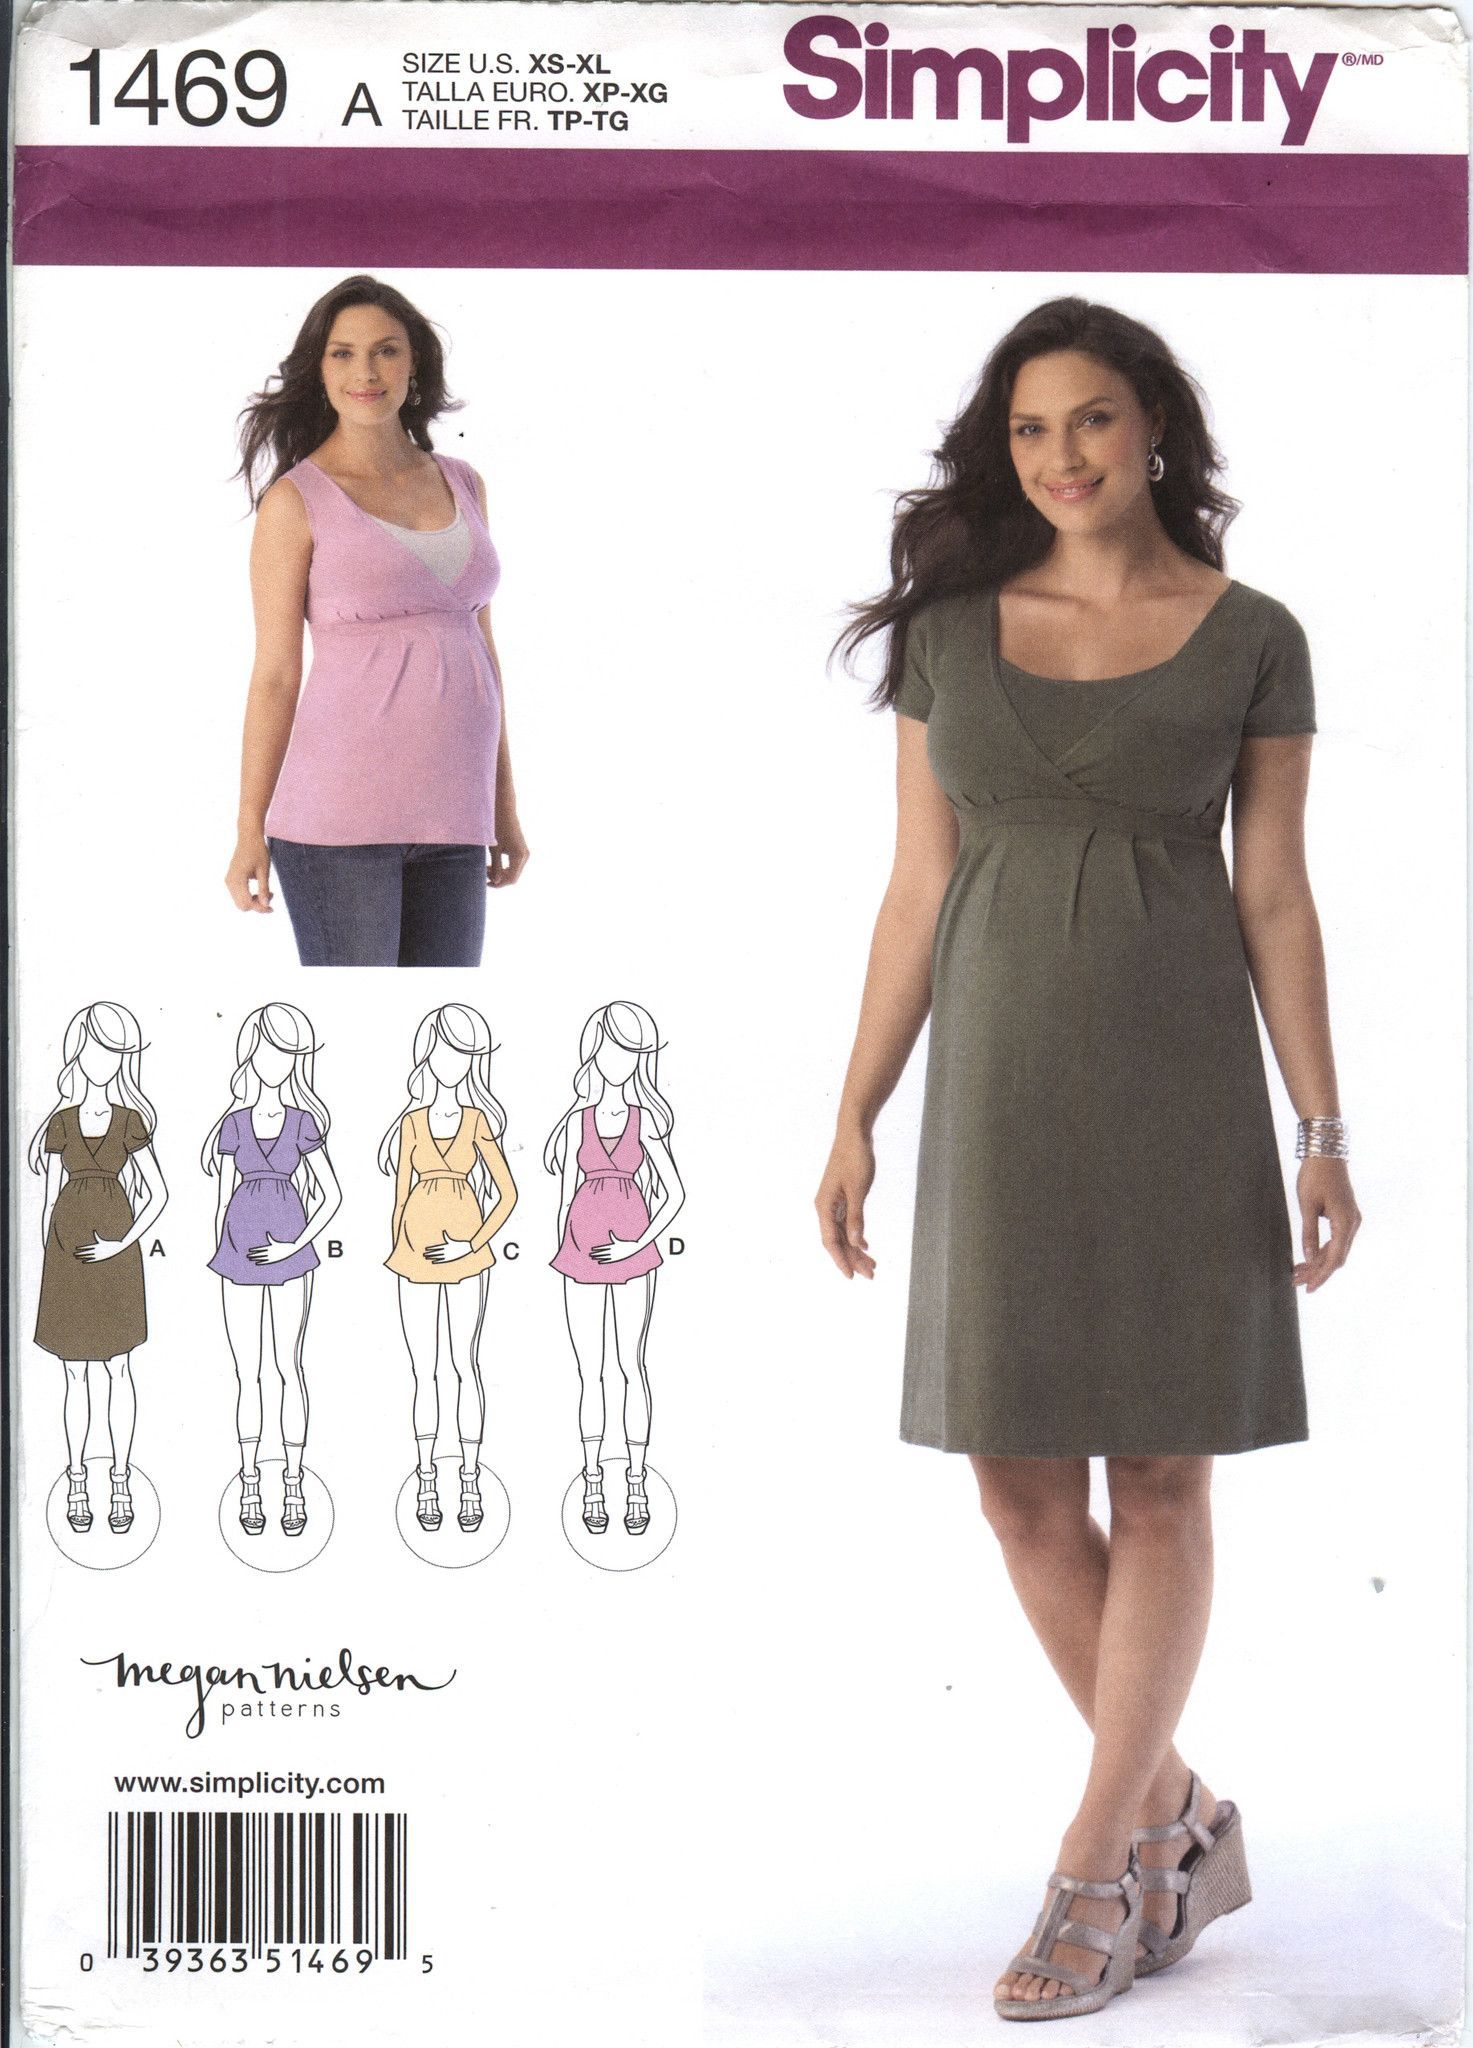 b7eb0568e Simplicity 1469 Misses' Maternity and Nursing Knit Dress or Top ...